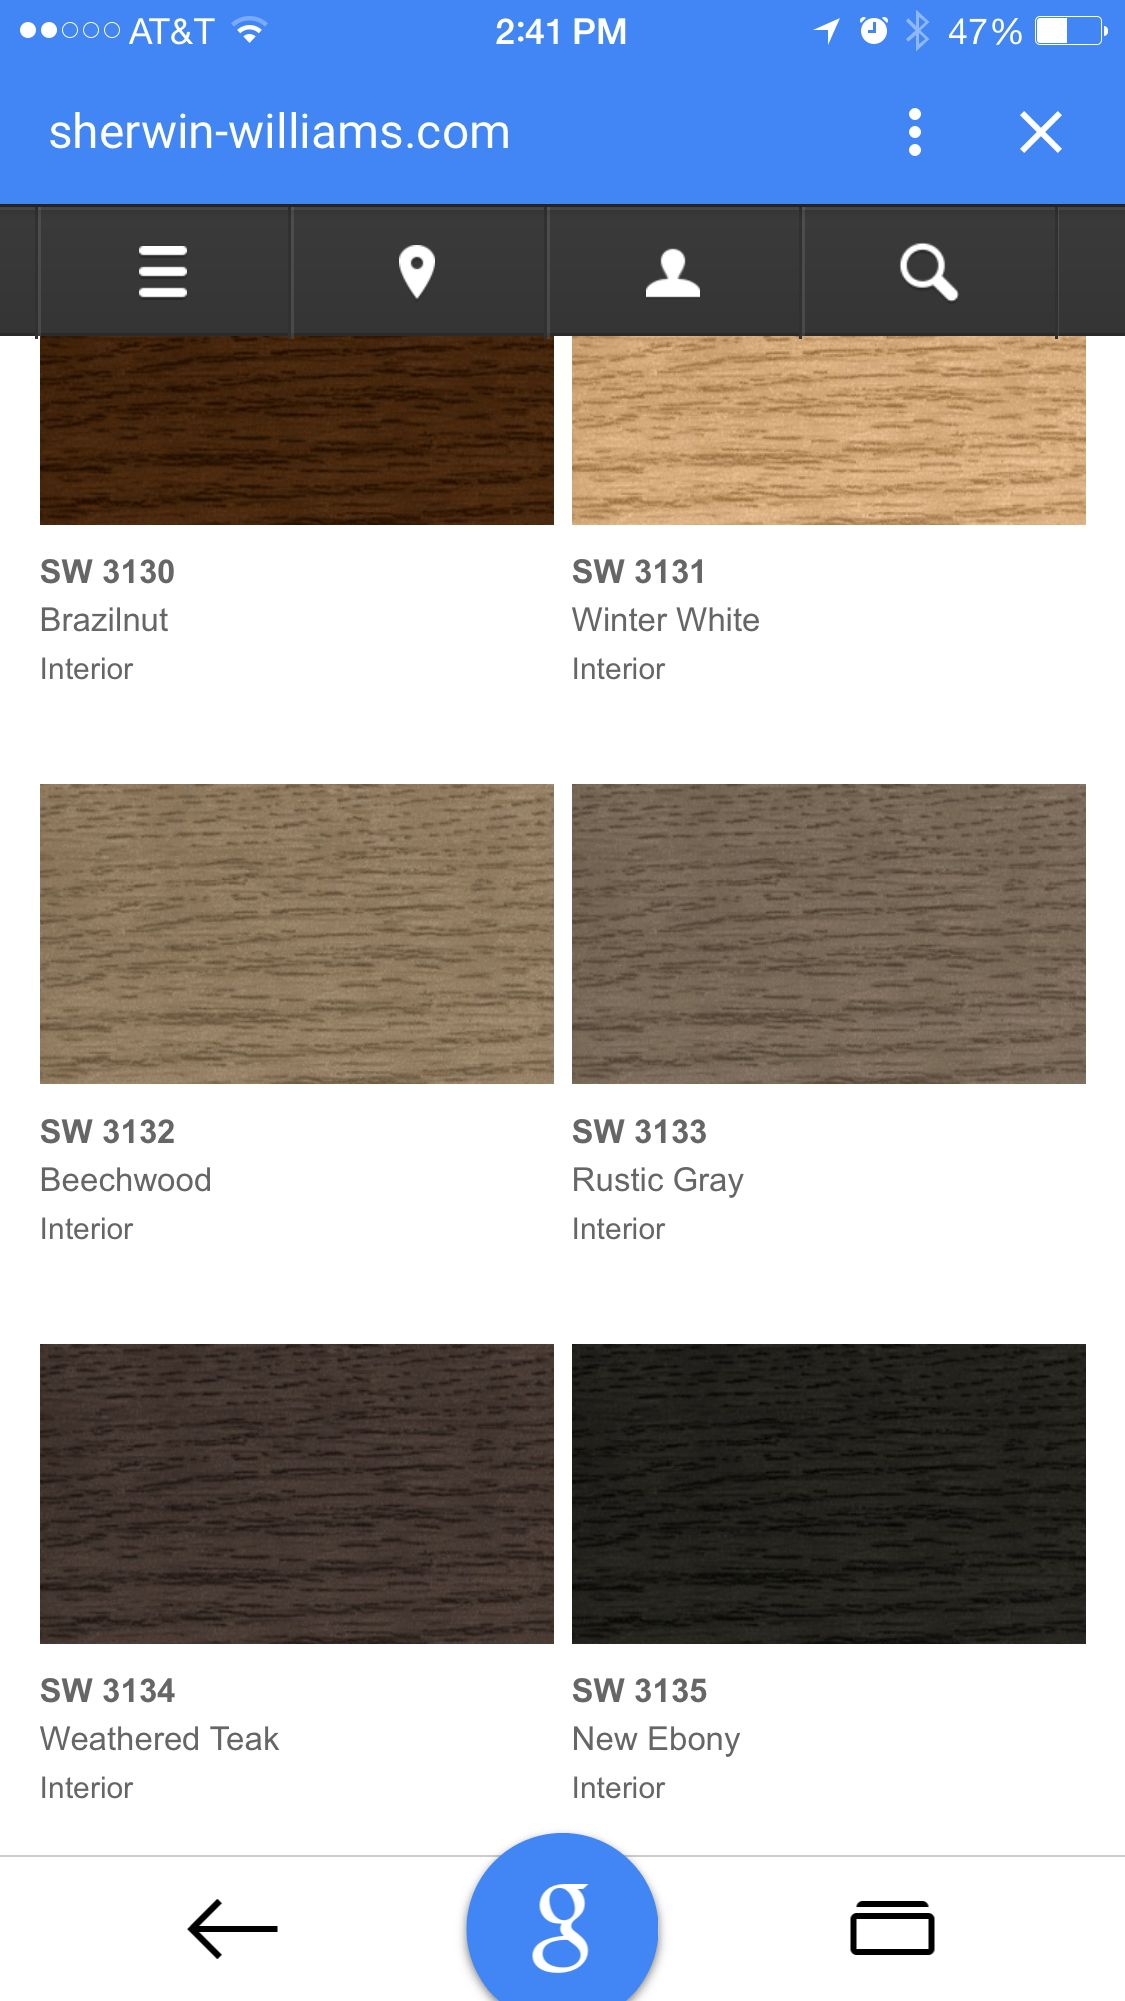 Stains Best Warm Grey Colors Sw 3133 Rustic Gray Or Sw 3134